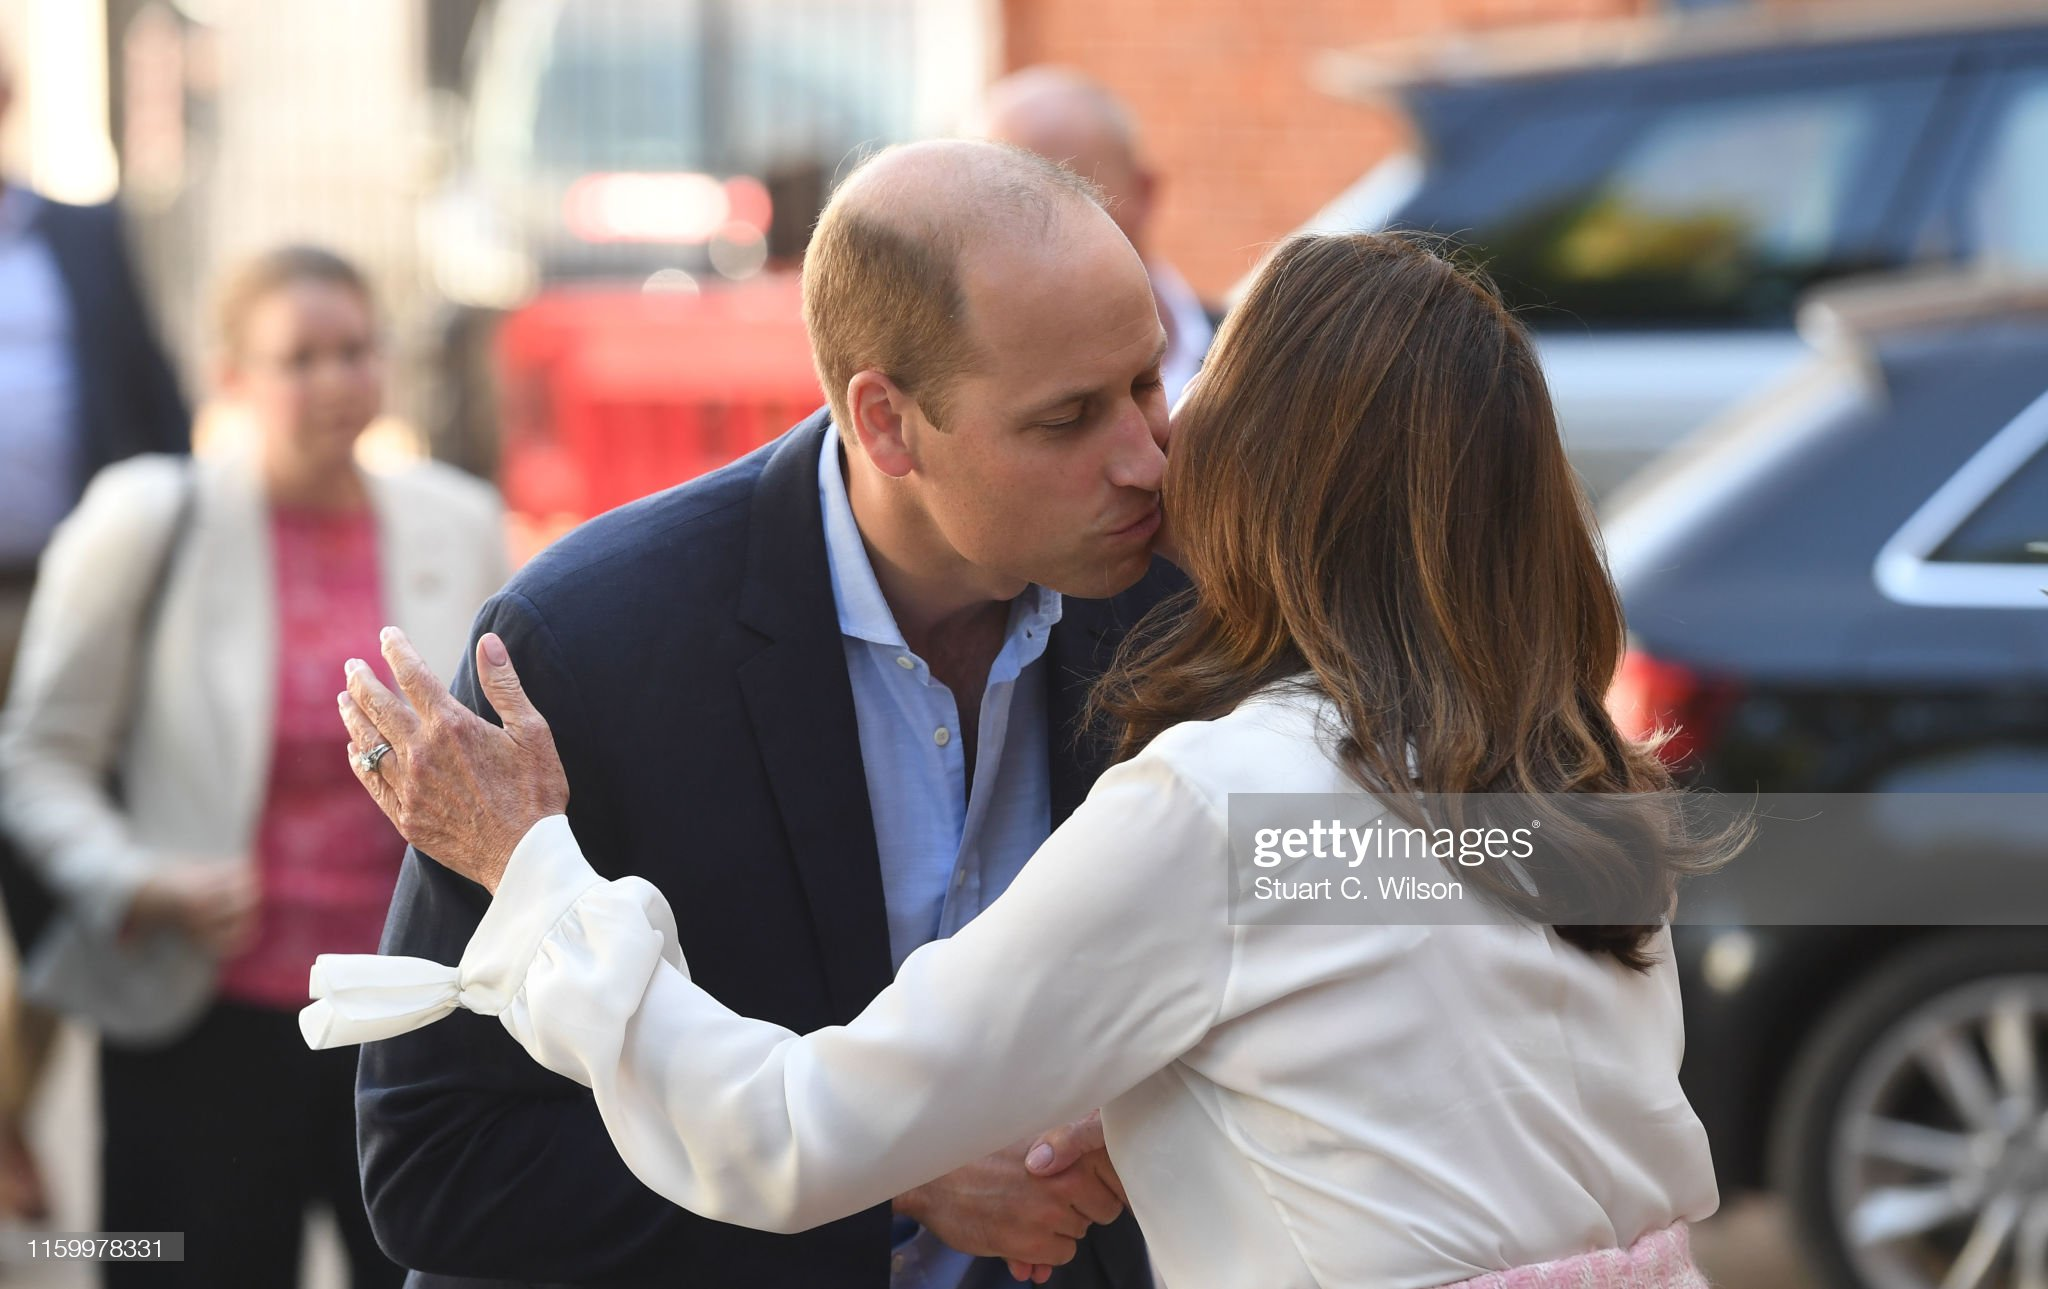 prince-william-duke-of-cambridge-visits-the-royal-marsden-on-july-04-picture-id1159978331